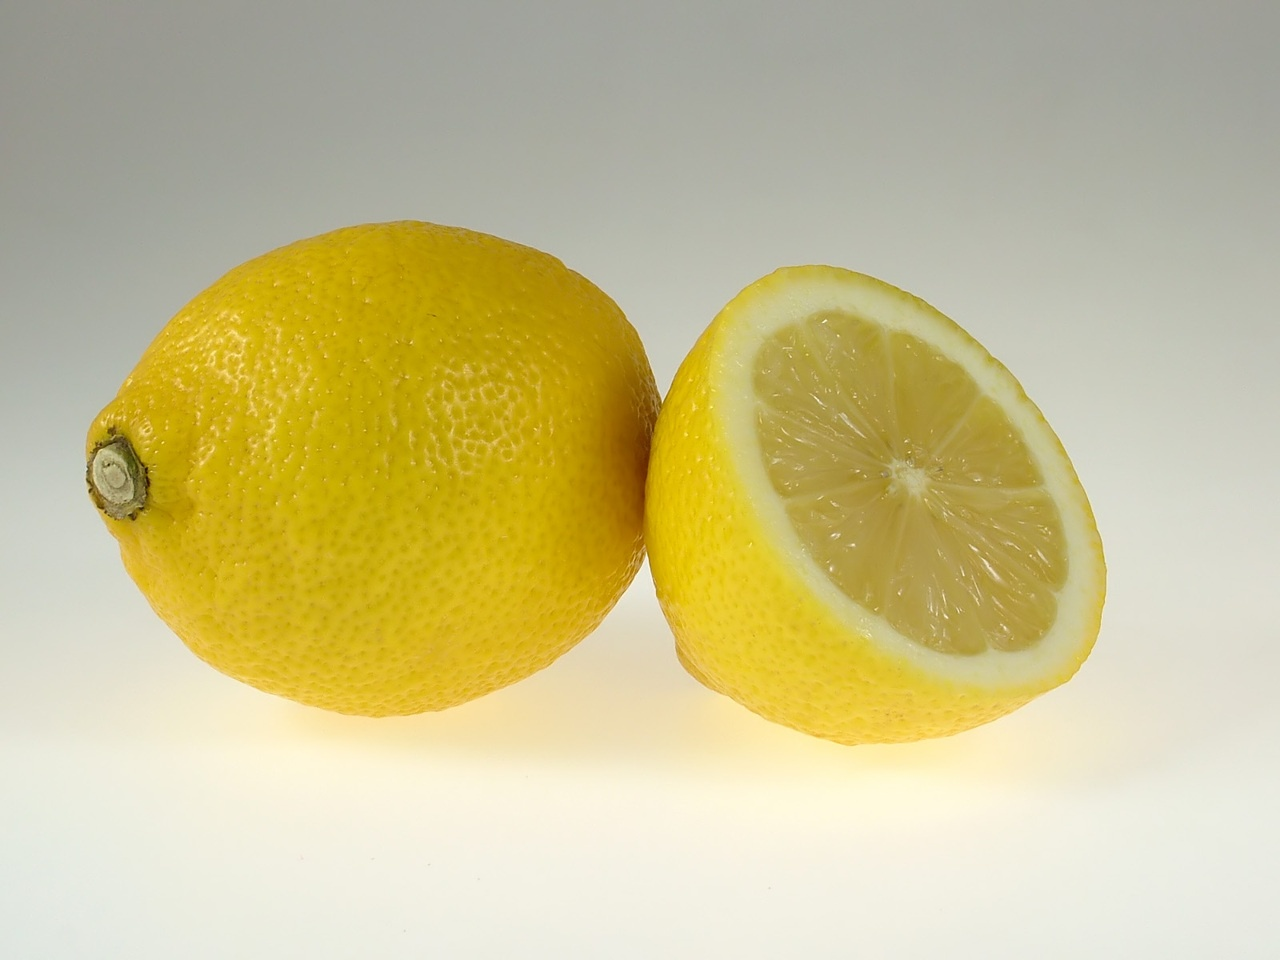 Avoid turning the people in your images into Lemon Heads